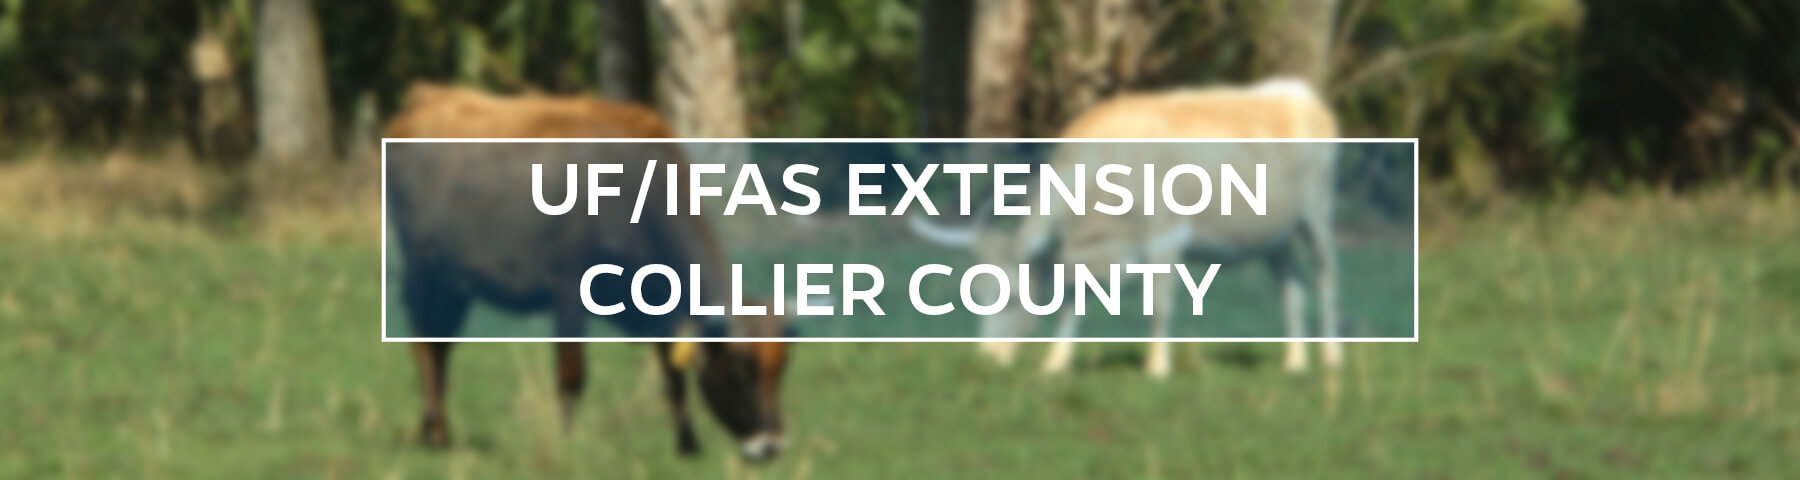 UF/IFAS Extension Collier County